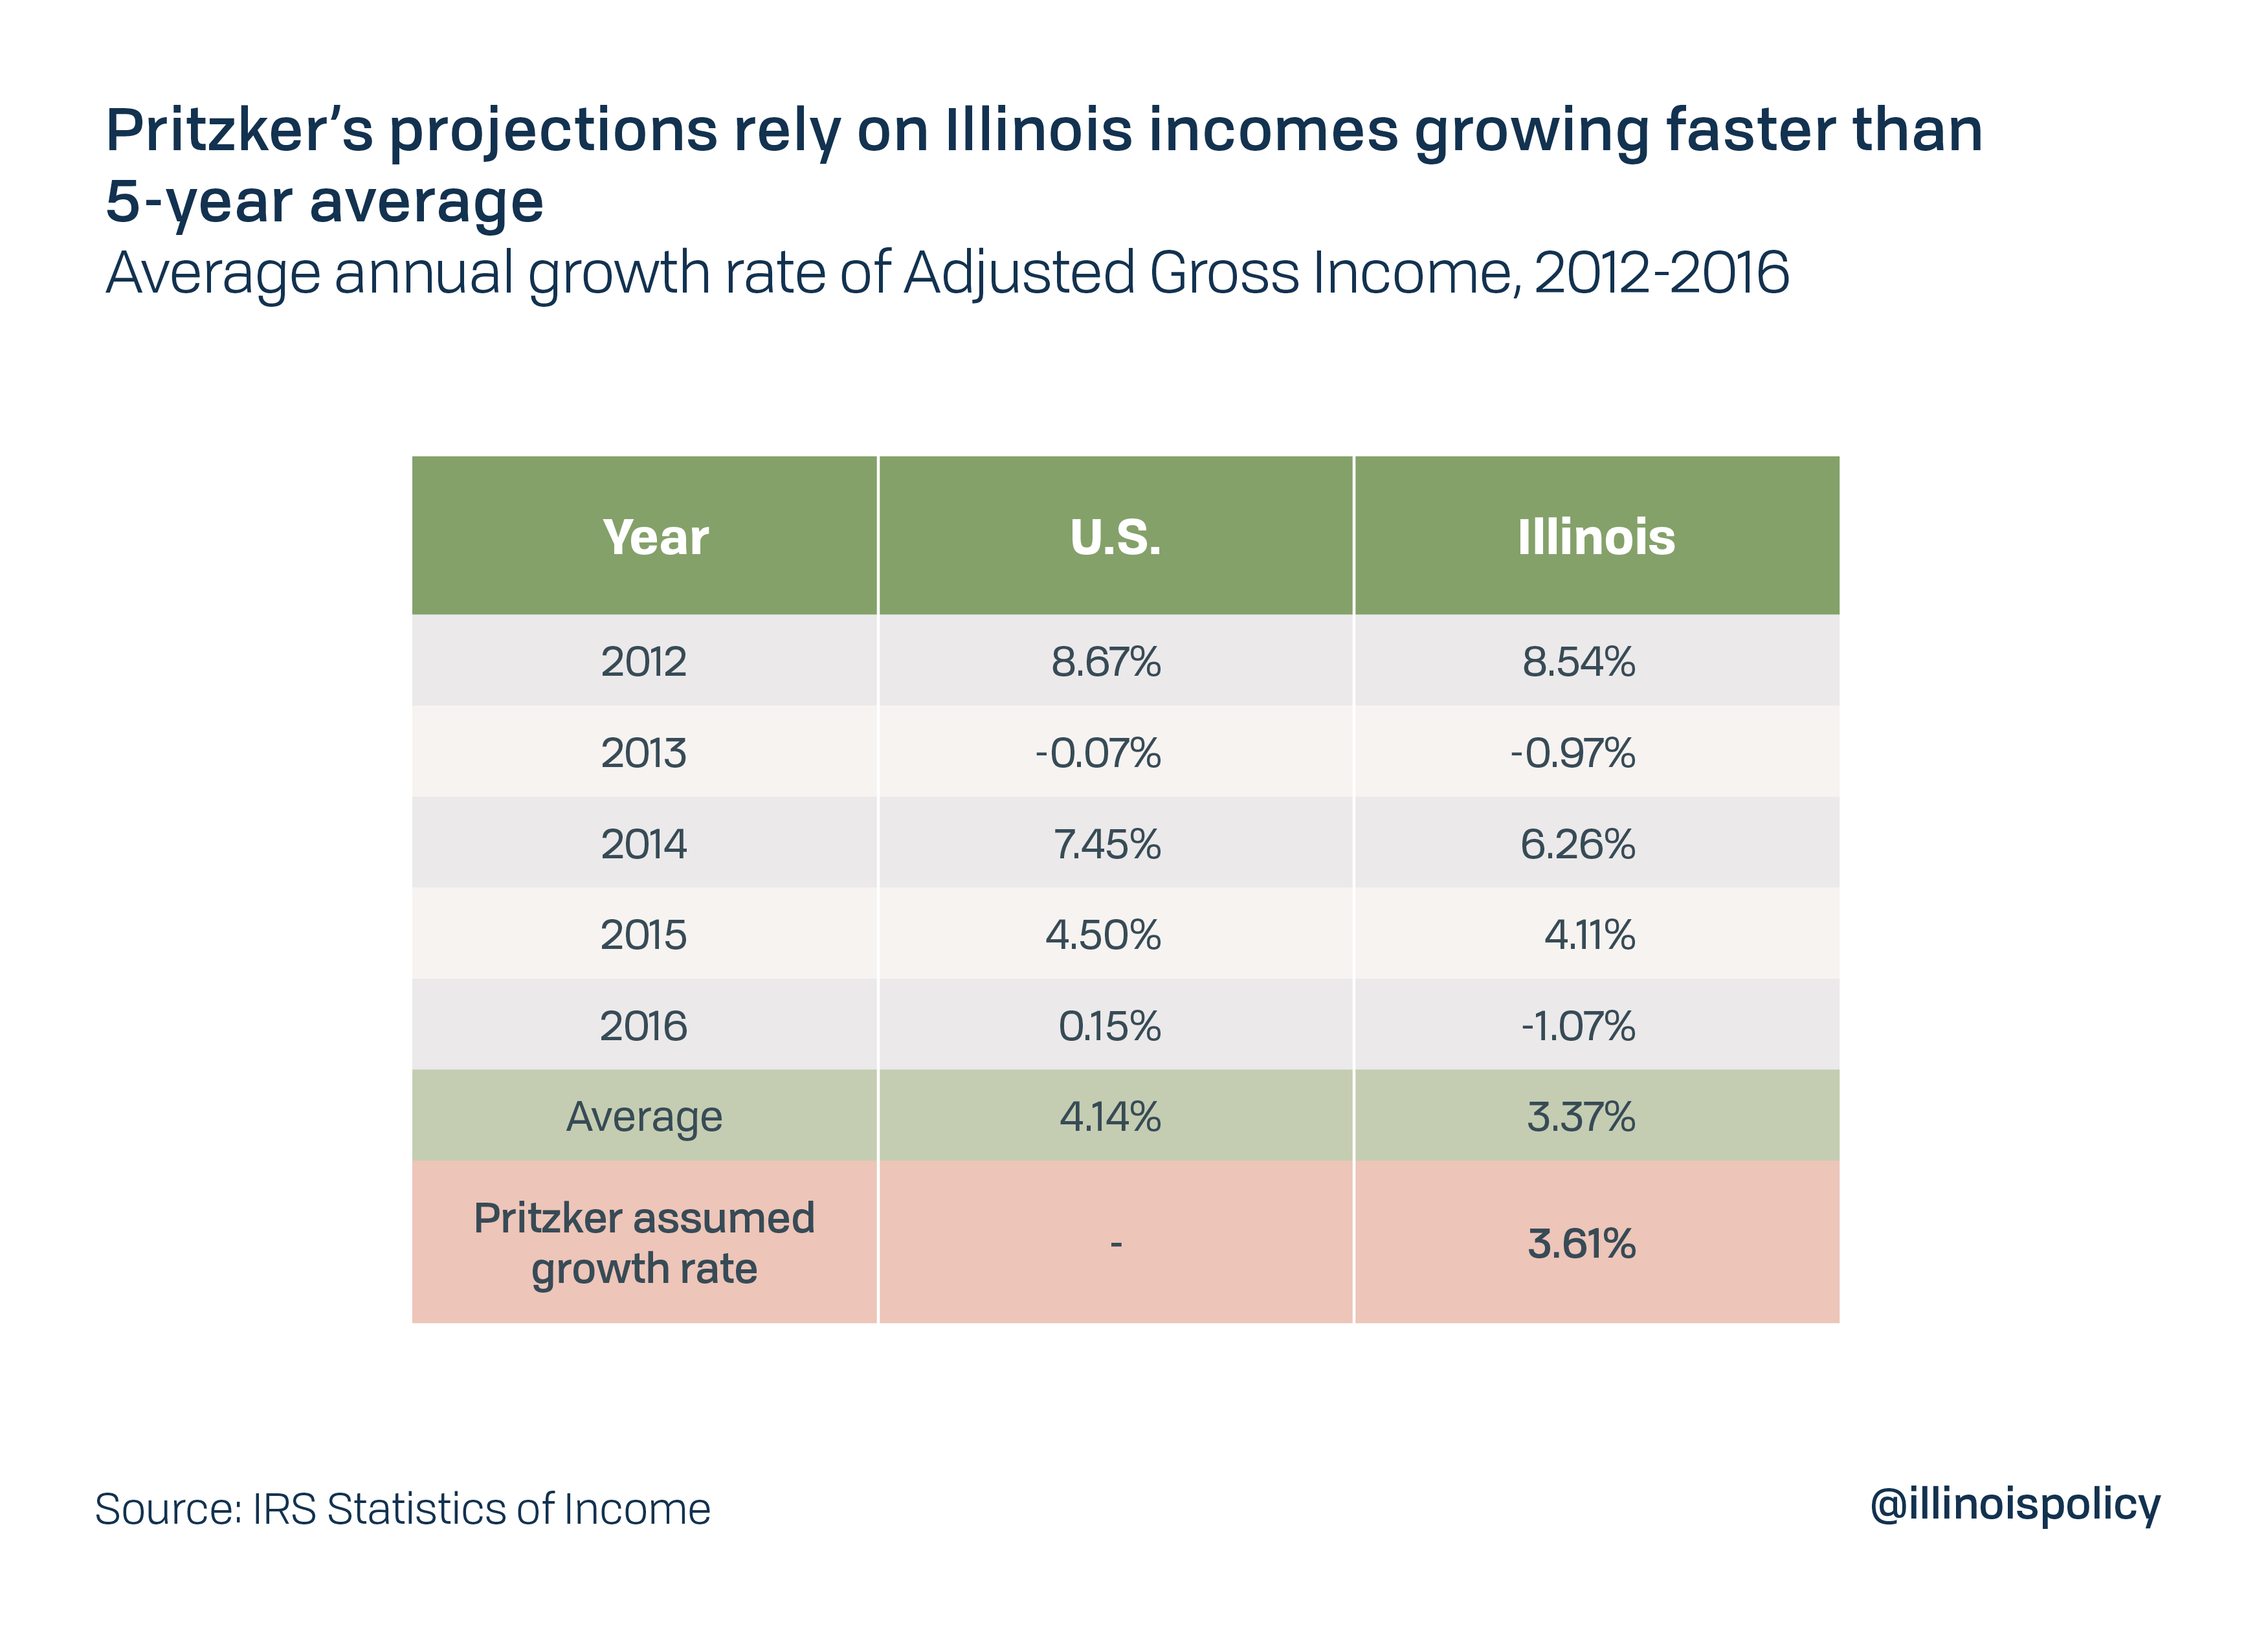 Pritzker's projections rely on Illinois incomes growing faster than 5-year average